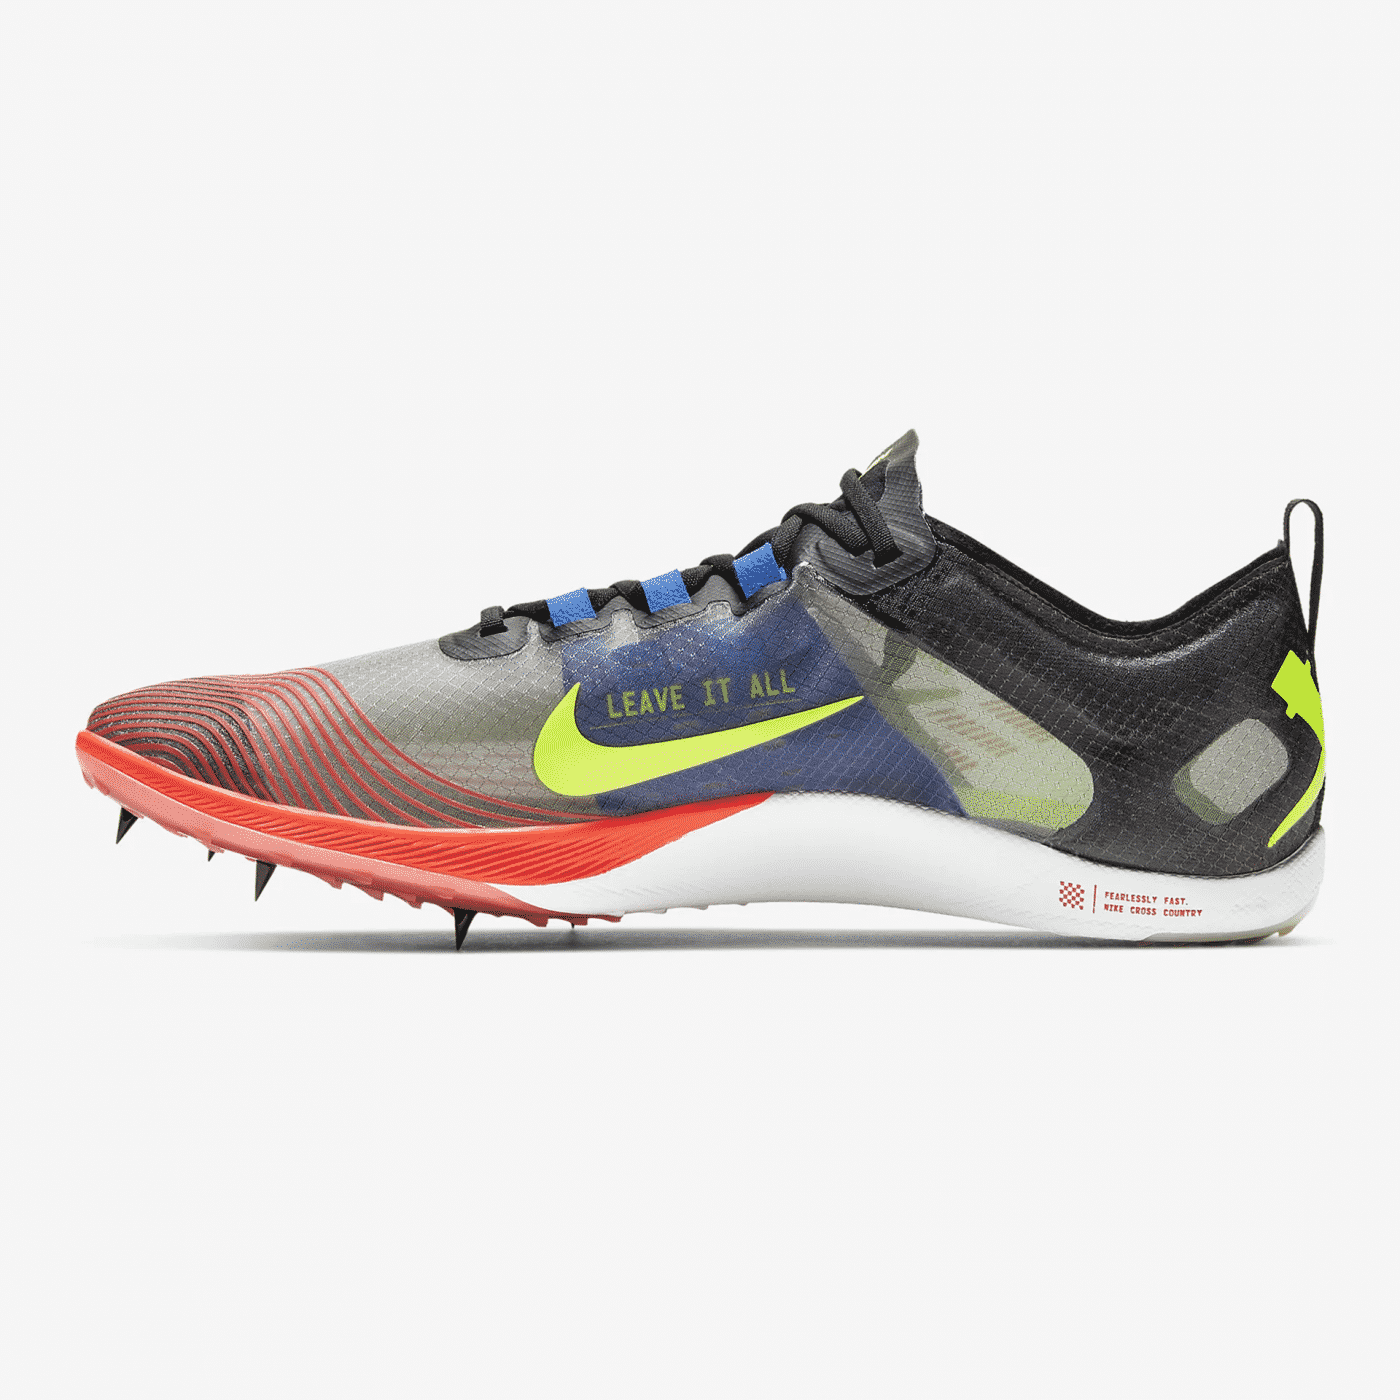 nike_pointes_cross_zoom_victory_XC_5_9